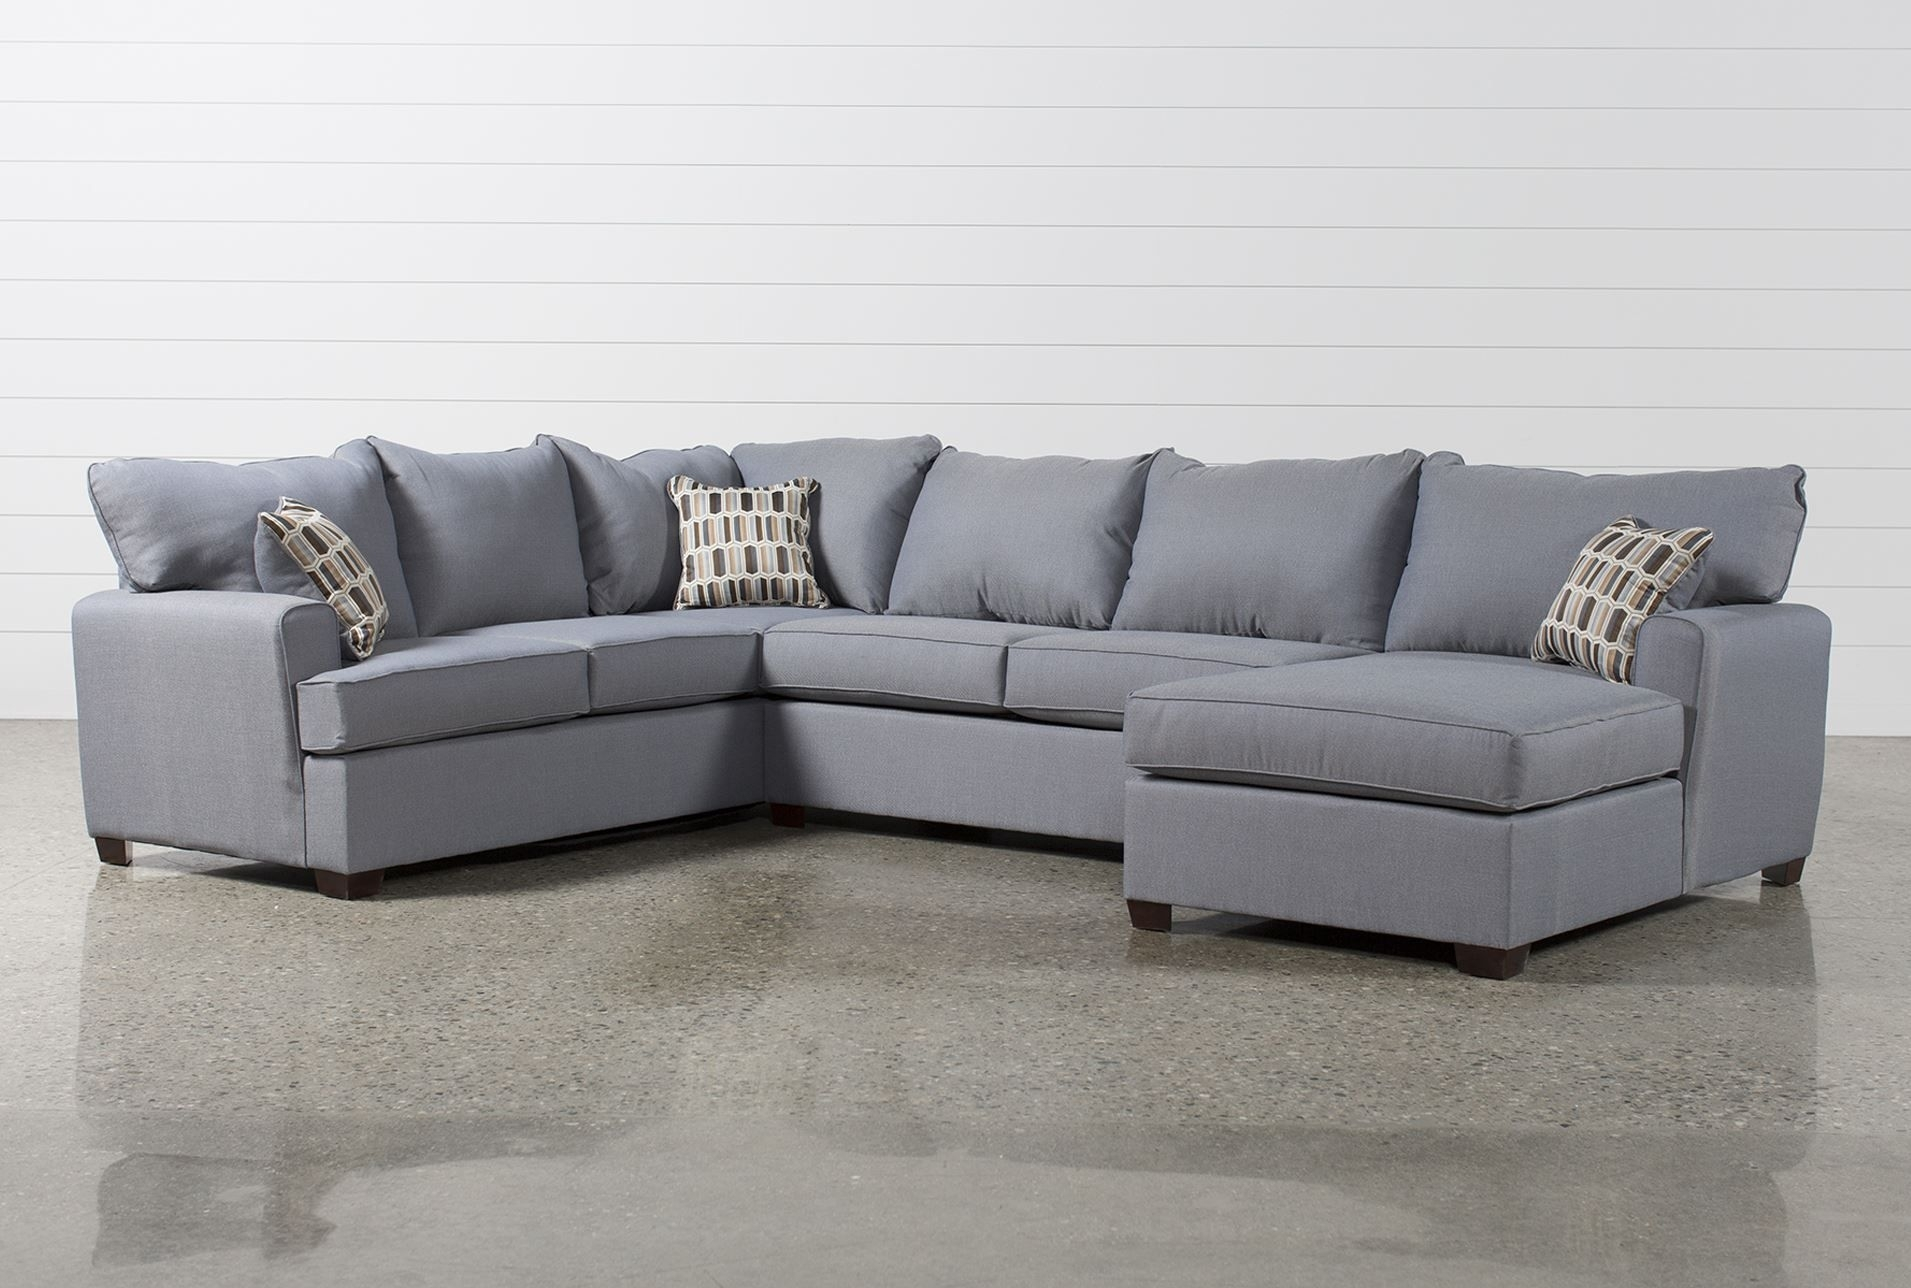 Bingham 3 Piece Sectional W/raf Chaise – Signature | For The Home Throughout Mcdade Graphite 2 Piece Sectionals With Laf Chaise (Image 3 of 25)